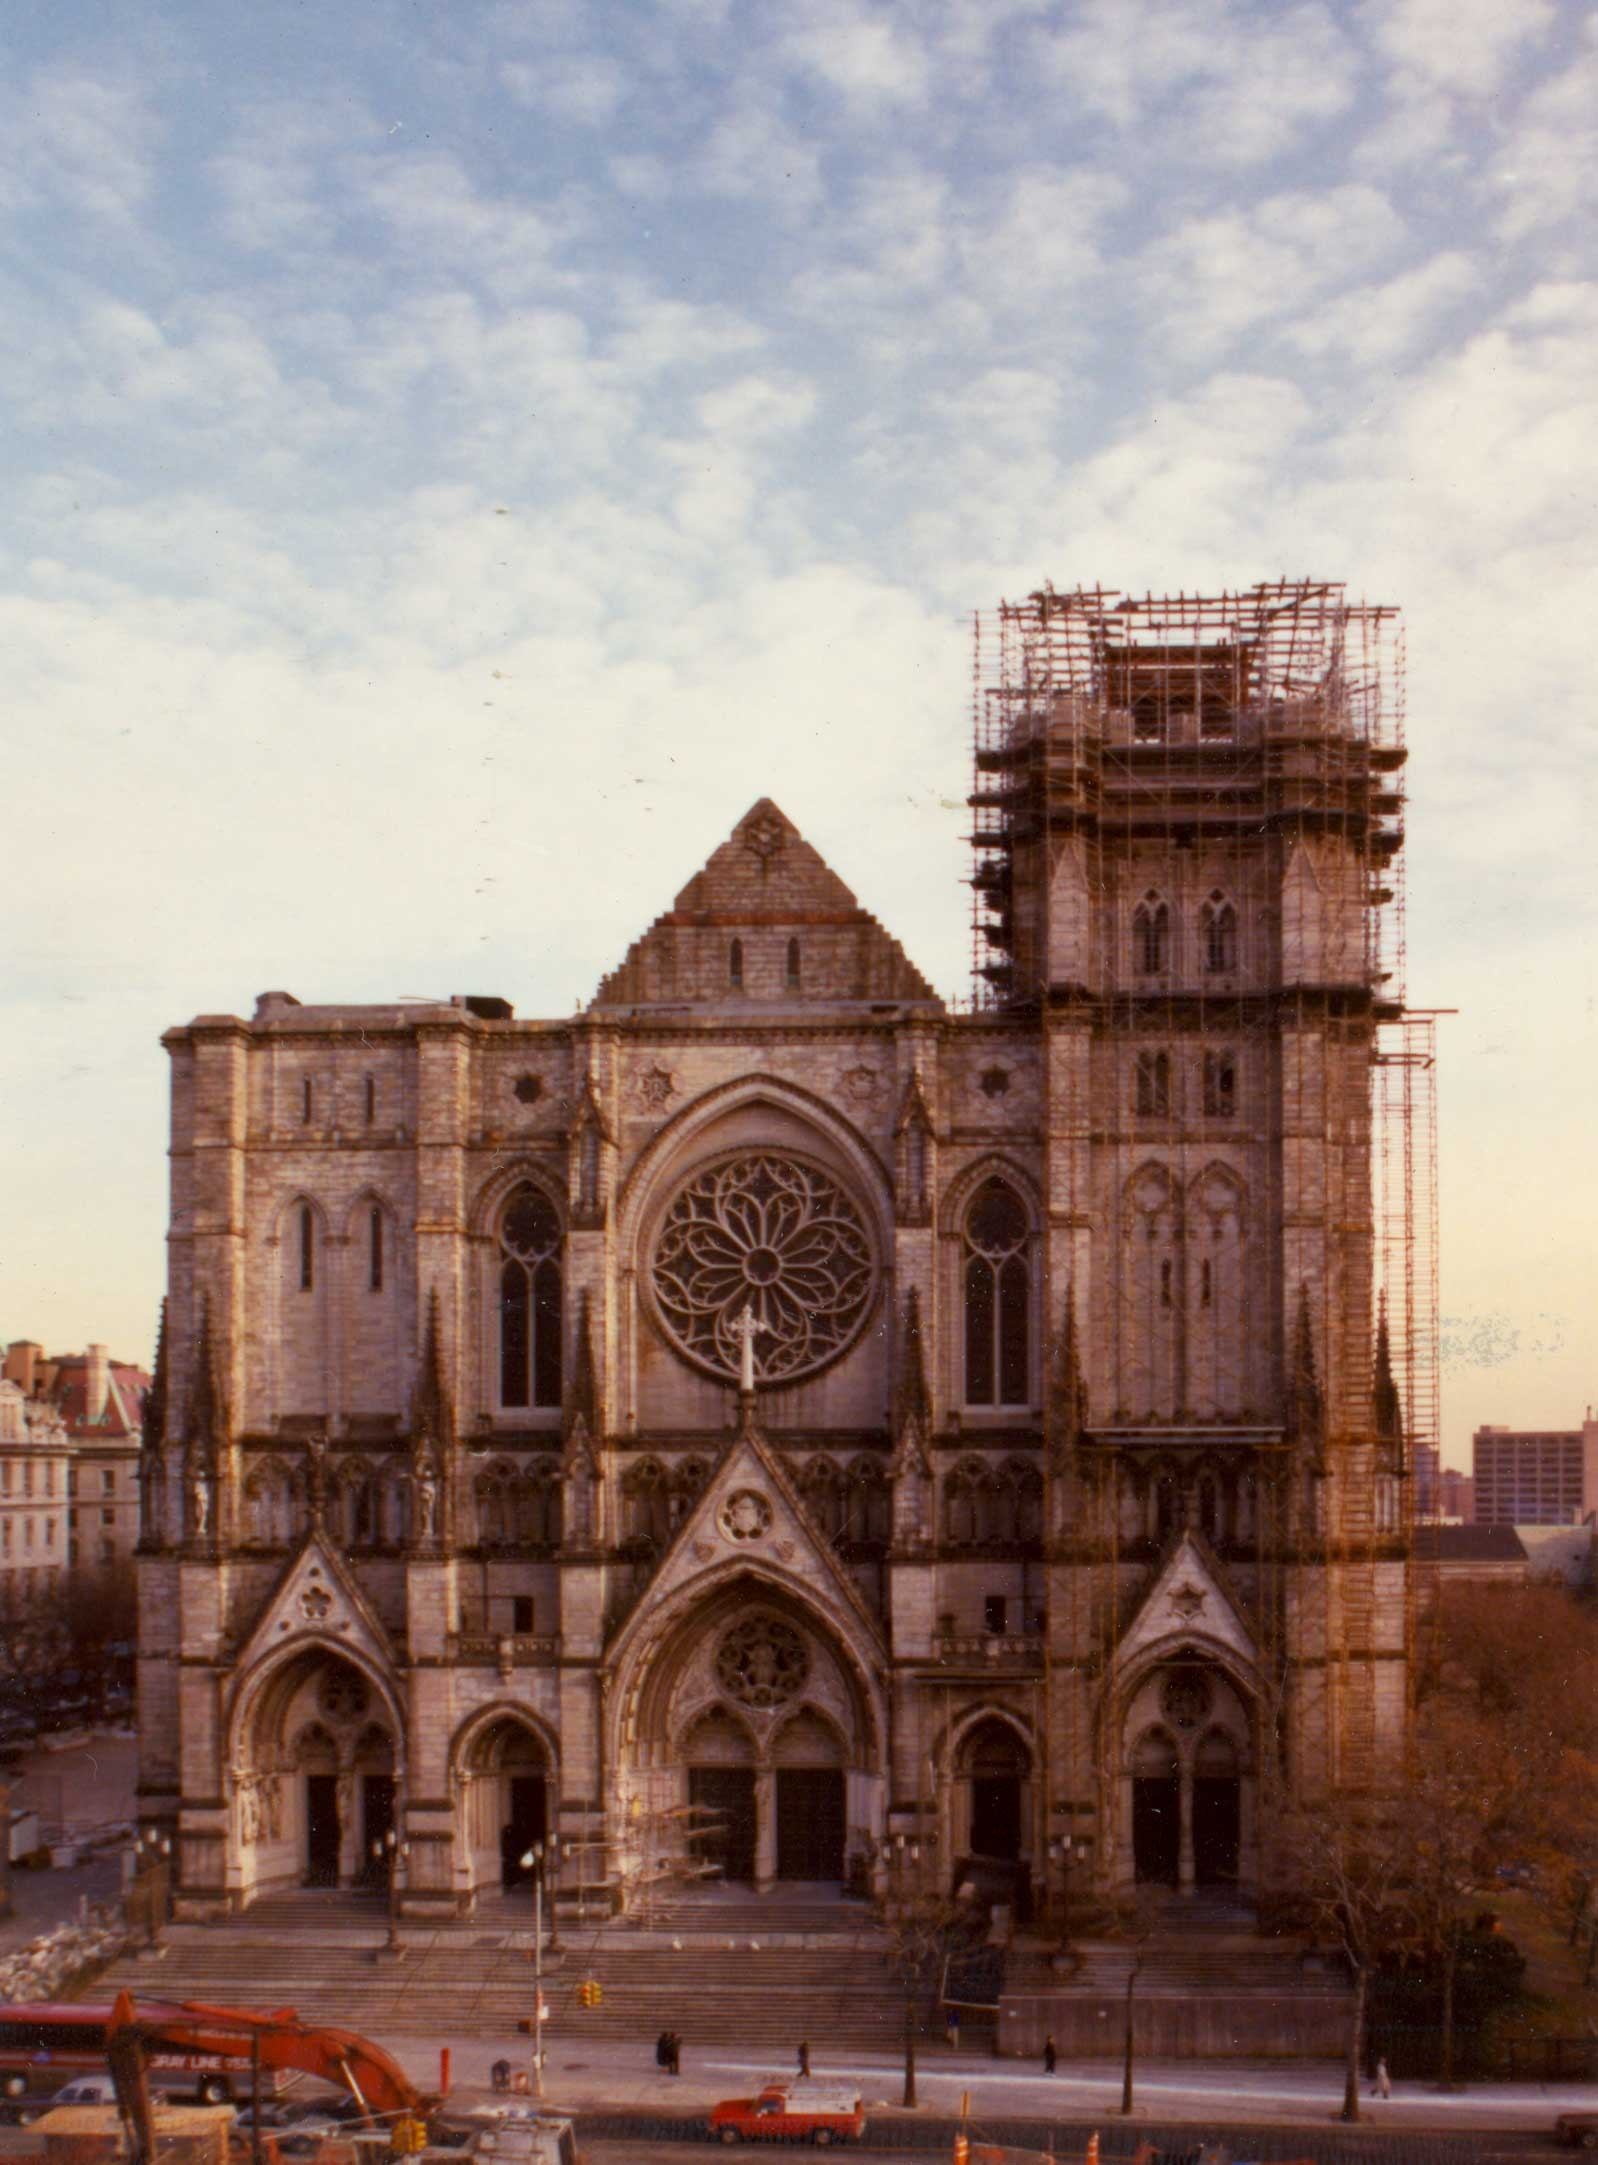 1990: The front facade, as designed by Cram, after a decade of stone work. Credit: Episcopal Diocese of New York Archives